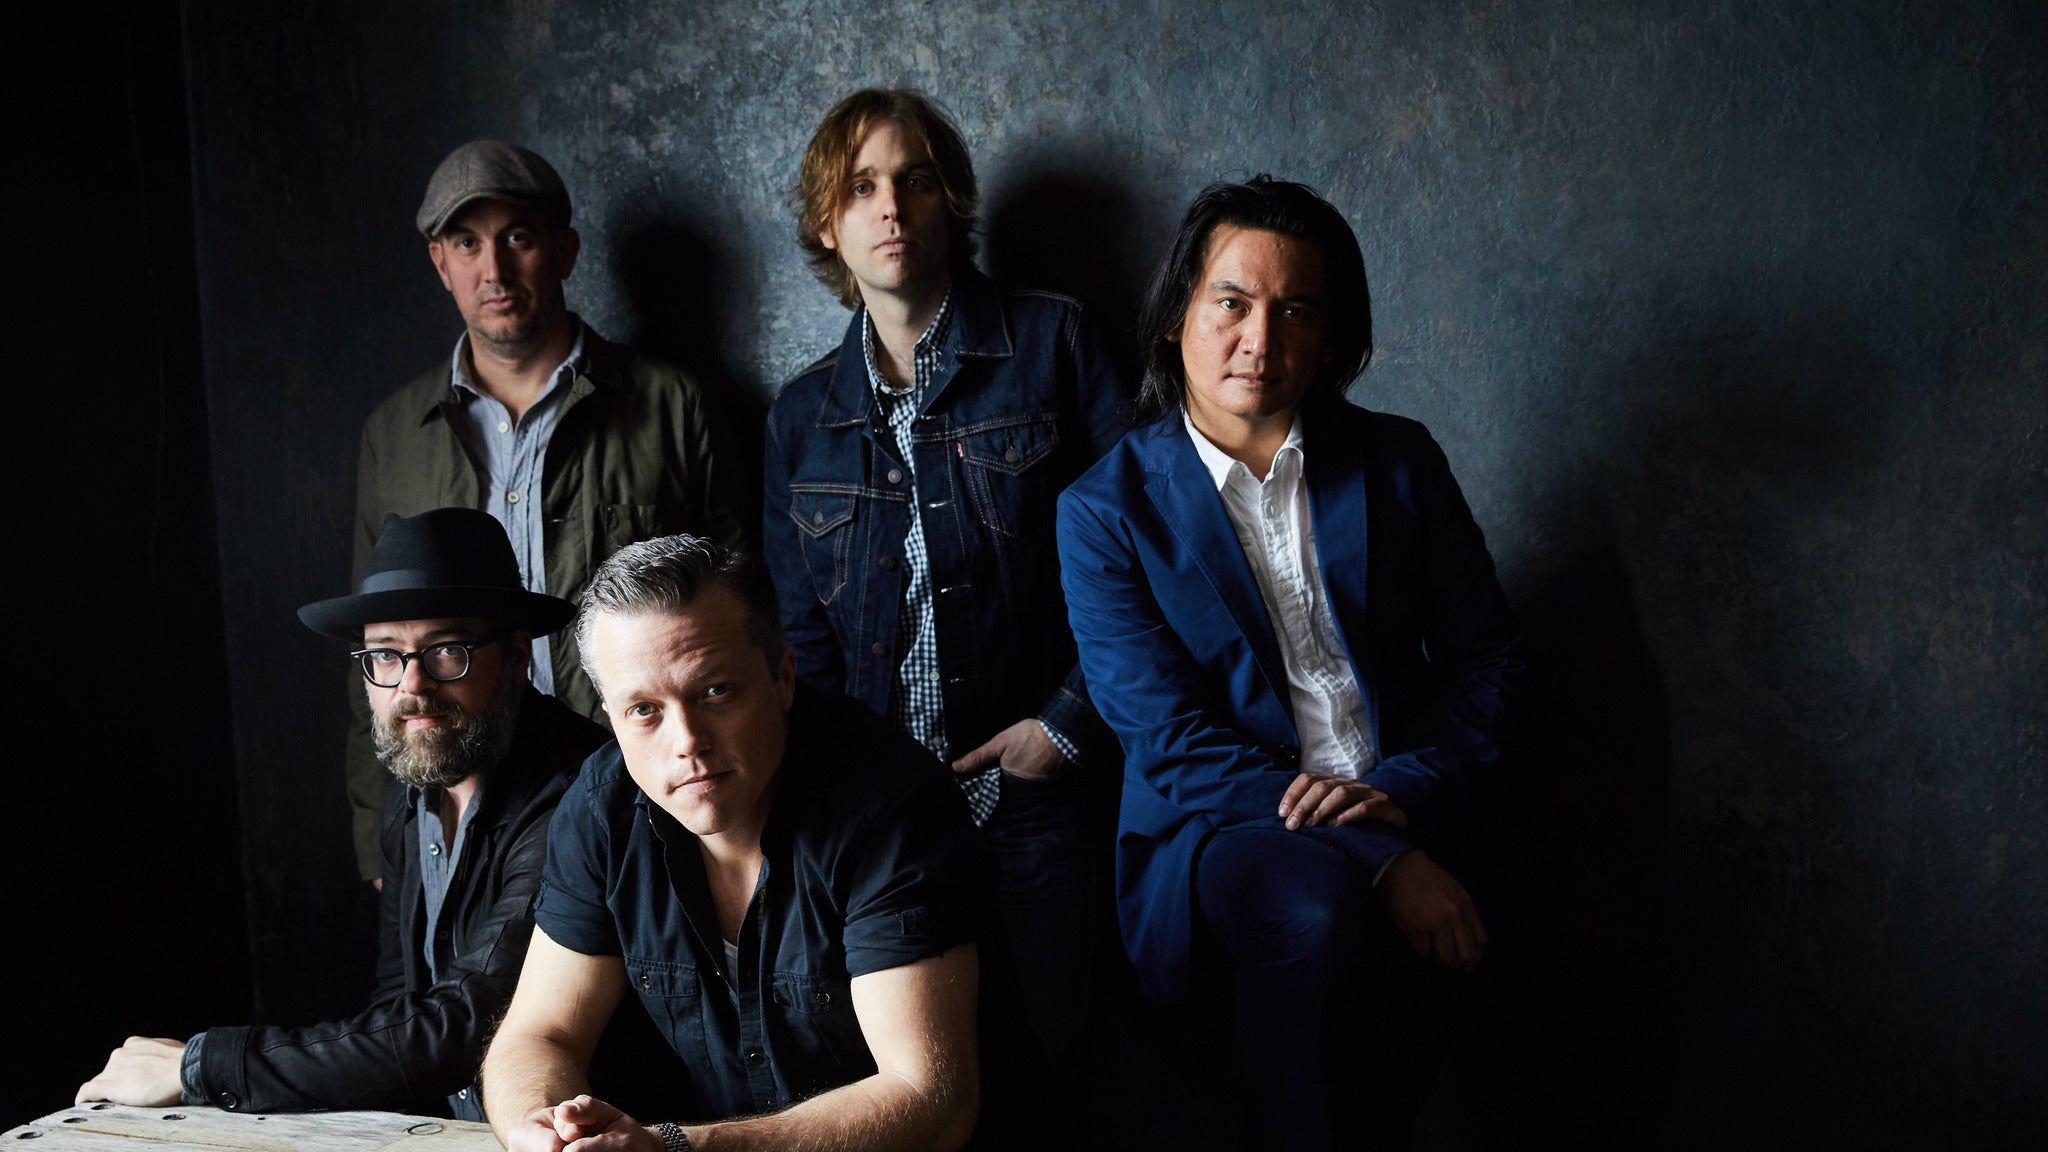 An Acoustic Evening With Jason Isbell at The Lyric Theatre